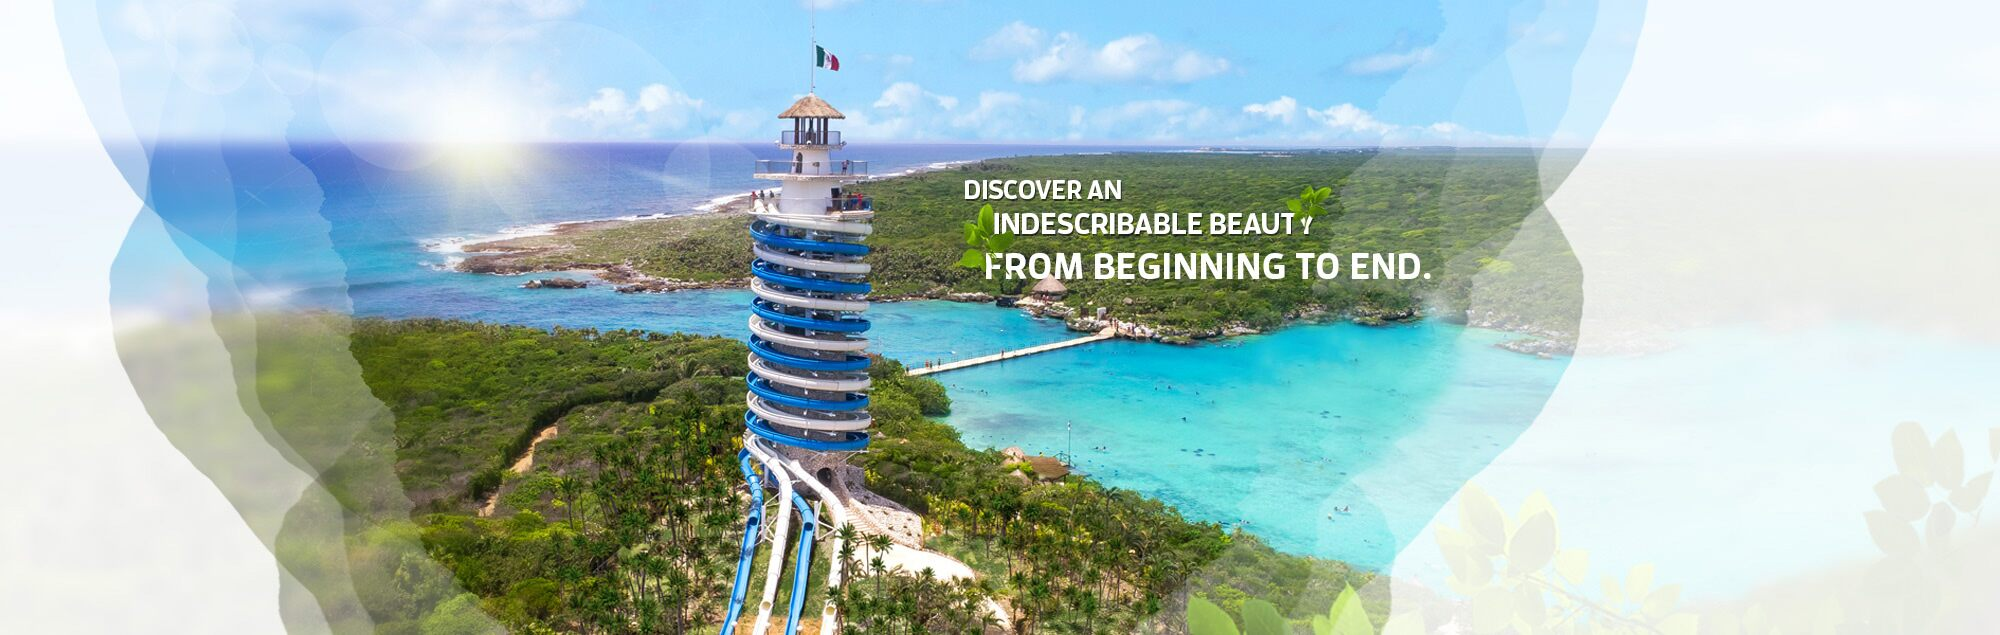 Cancun and Riviera Maya Parks | Xel-Há